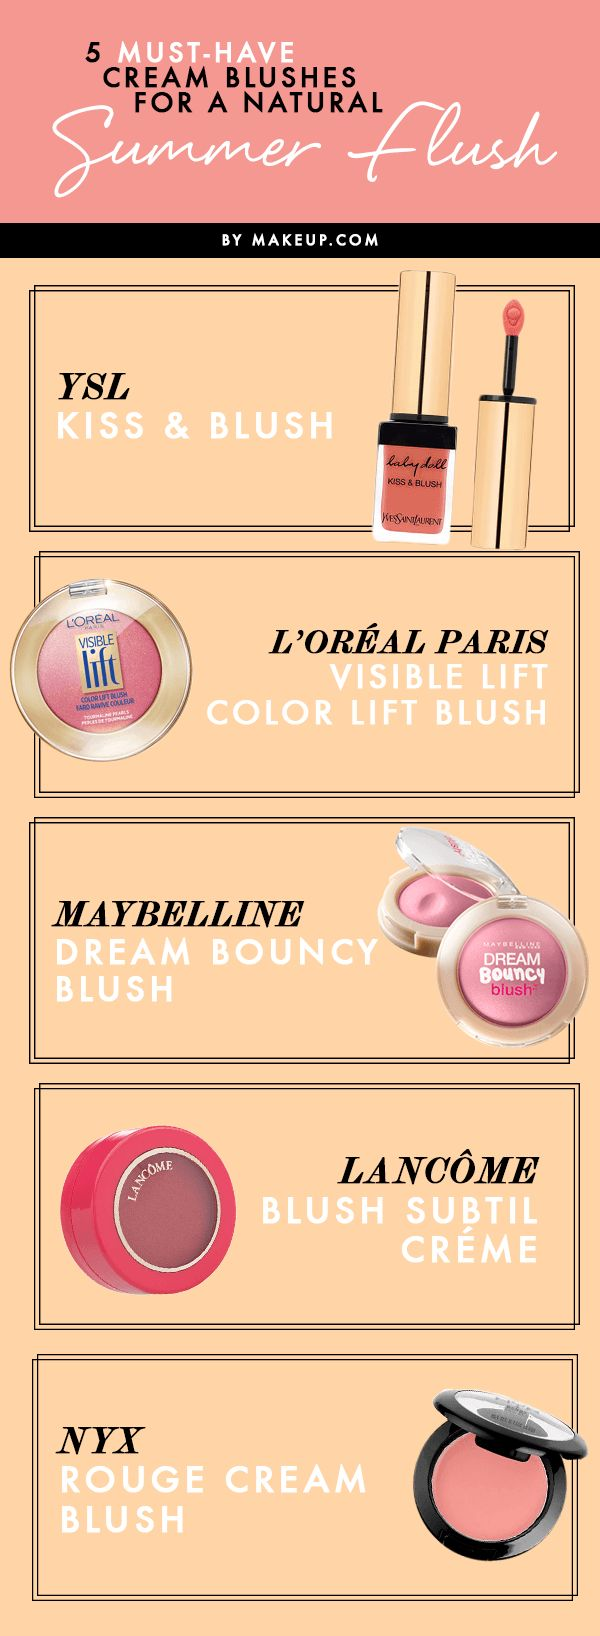 We've got five cream blushes to get you through the summer with lovely rosy cheeks!